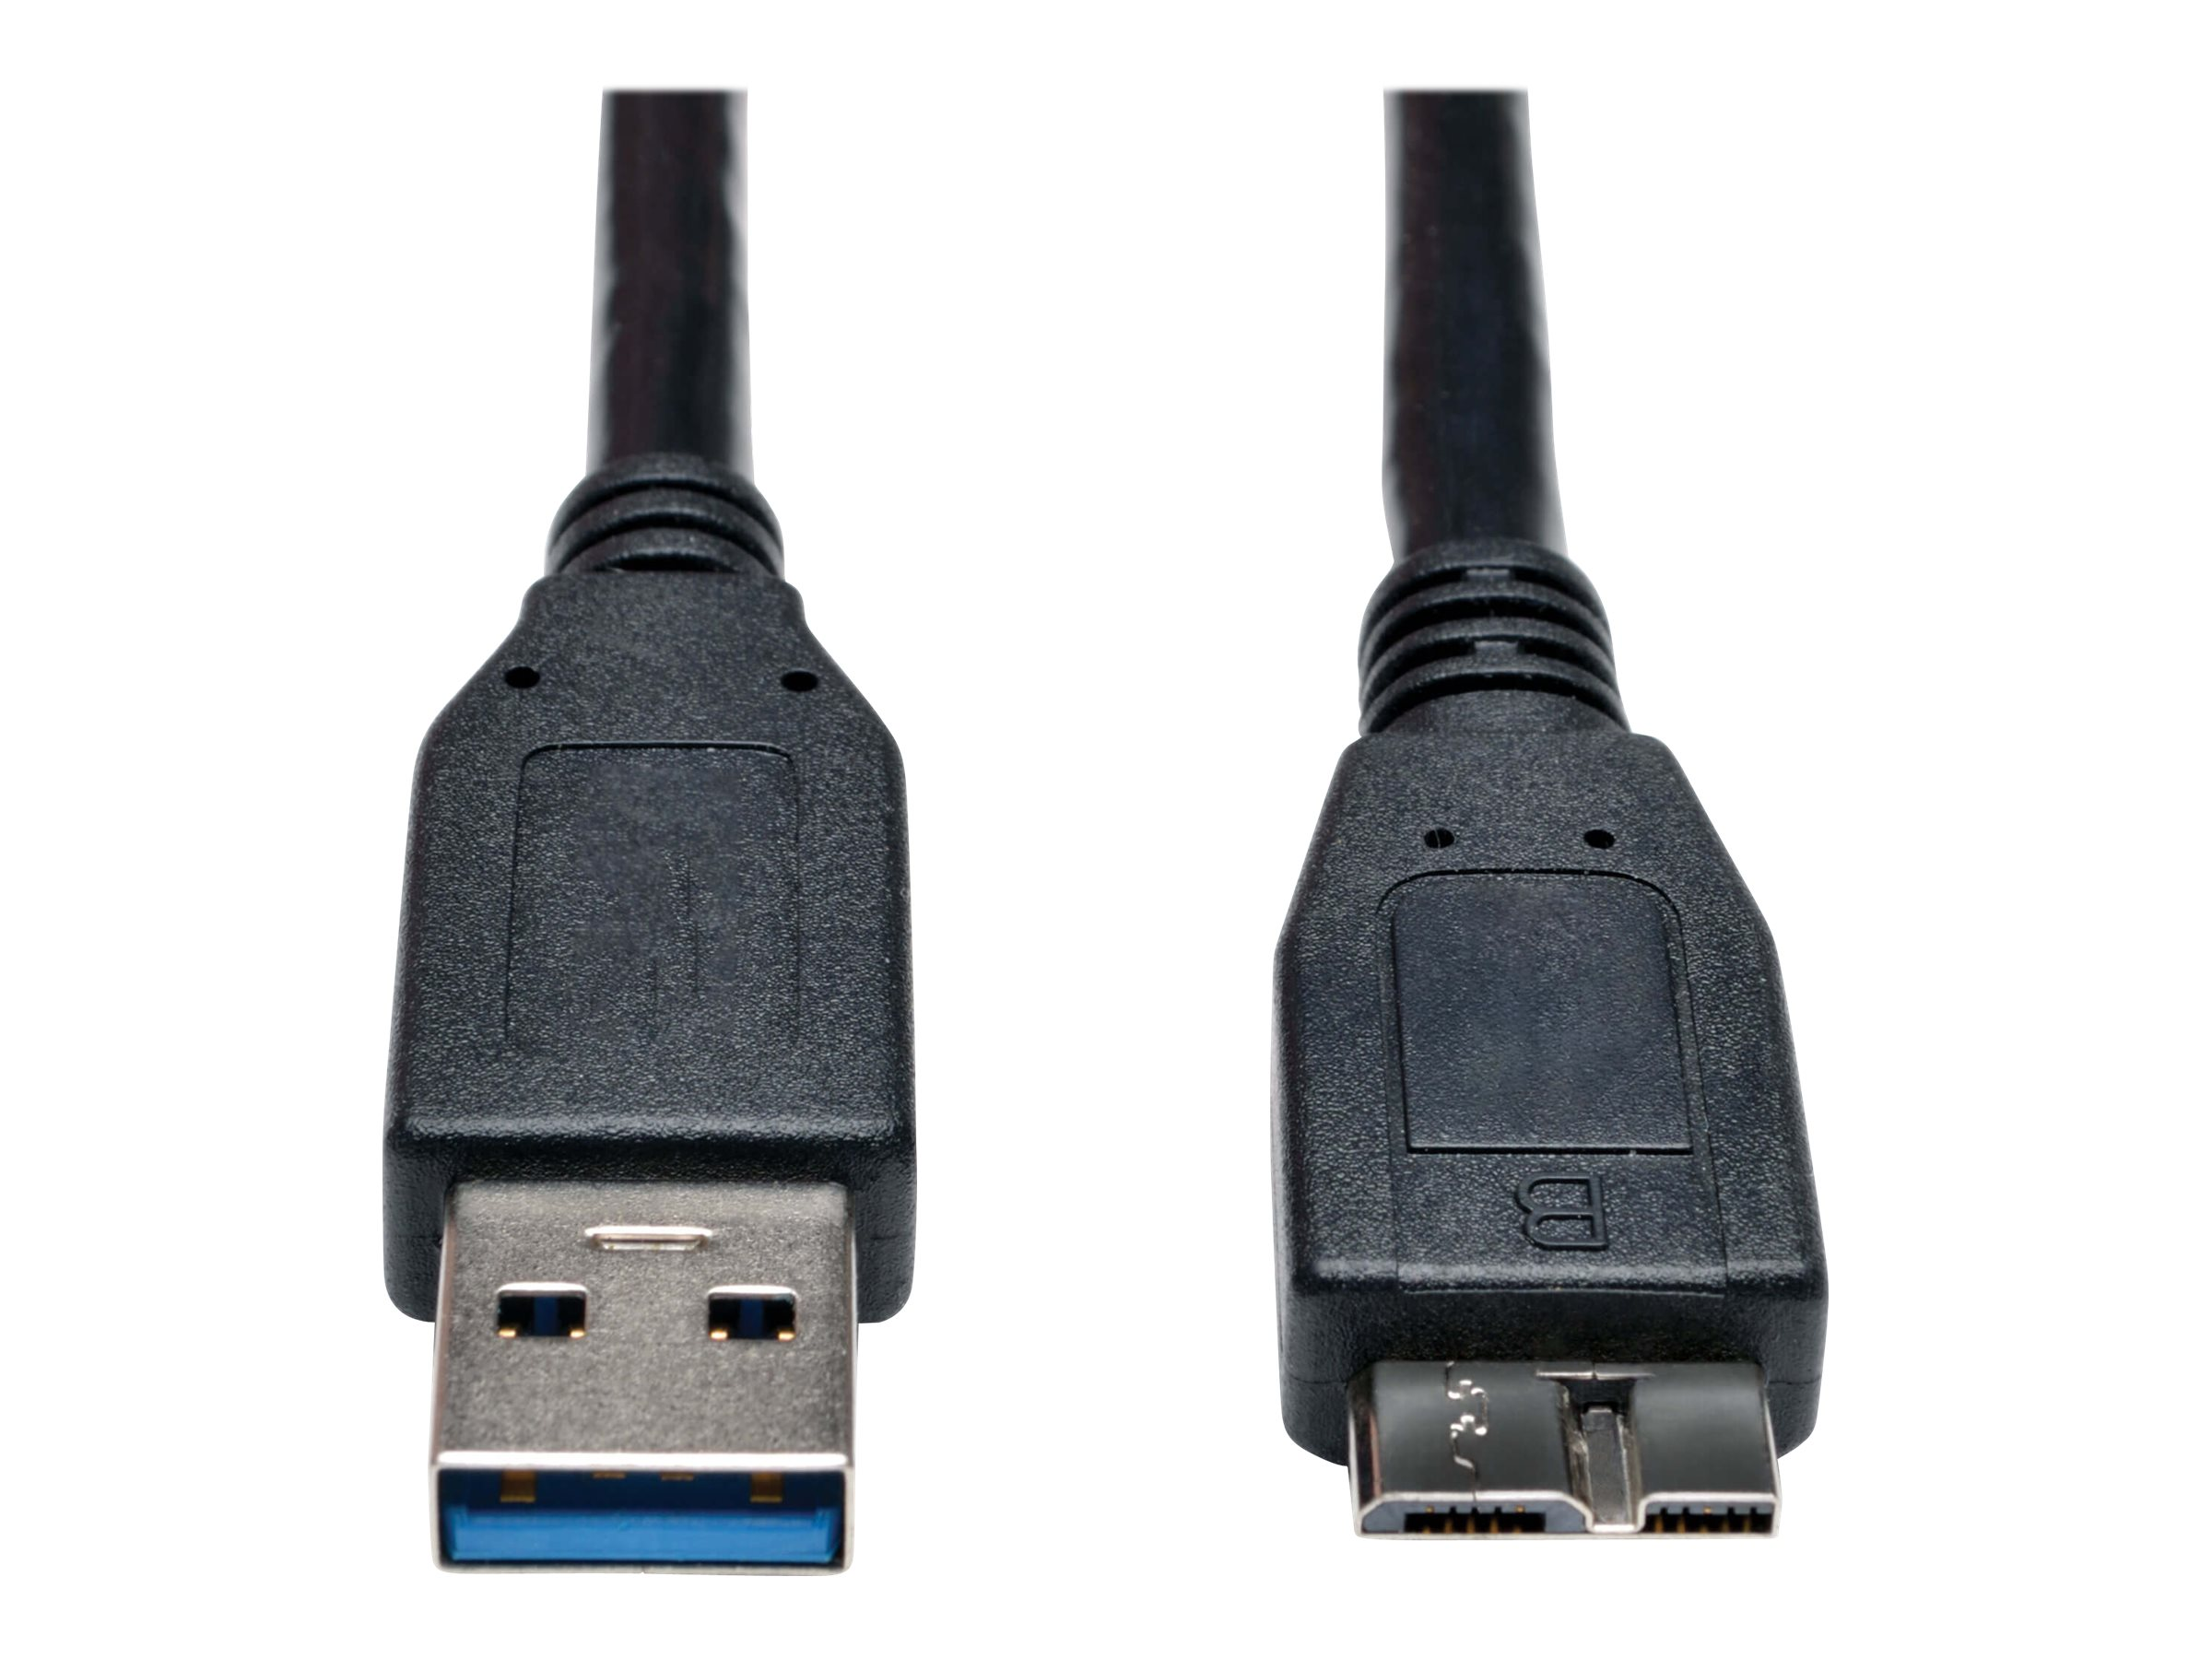 Tripp Lite 1ft USB 3.0 SuperSpeed Device Cable USB-A to USB Micro-B M/M Black 1' - USB cable - 30 cm